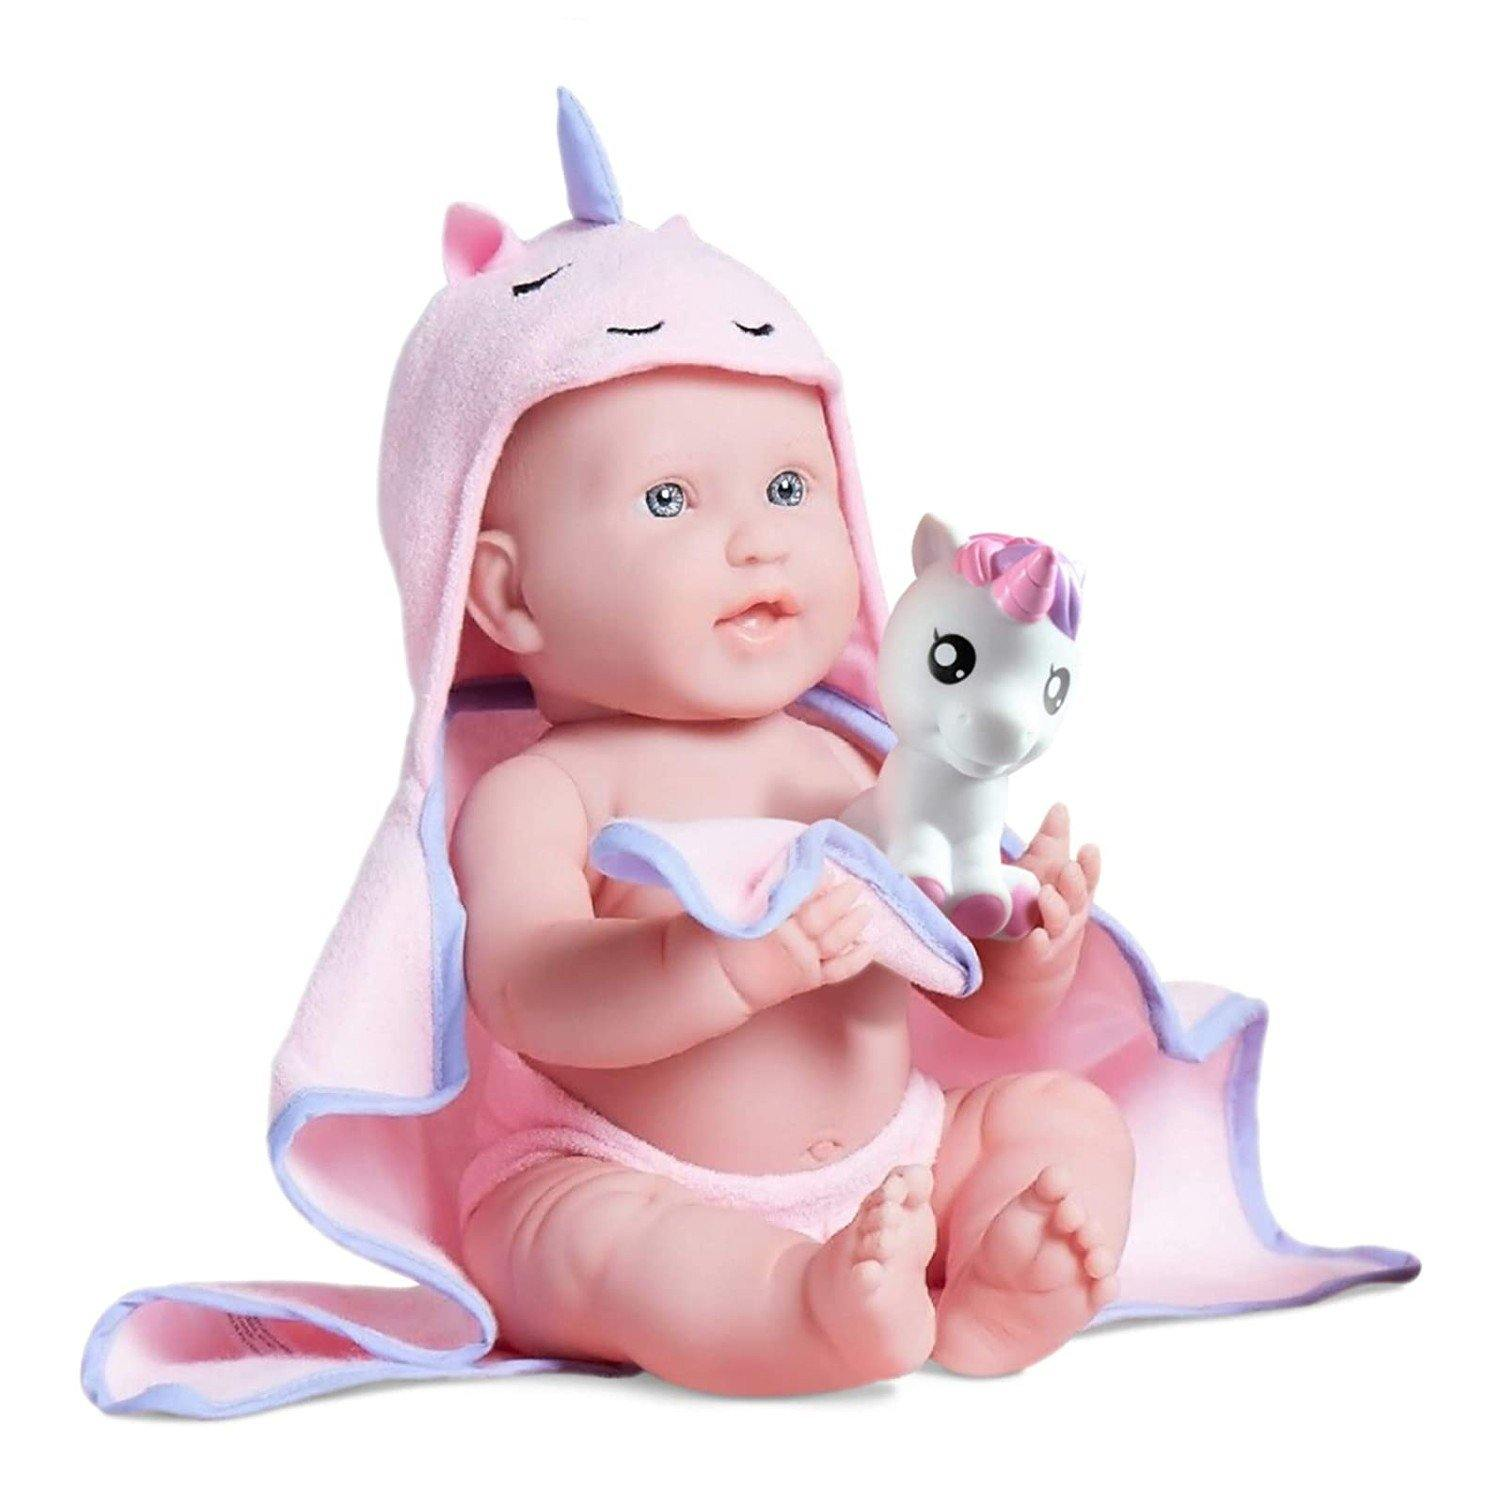 "JC Toys, La Newborn Baby Doll, All Vinyl Realistic 17"" Anatomically Correct Real Girl, with Hooded Unicorn Towel"